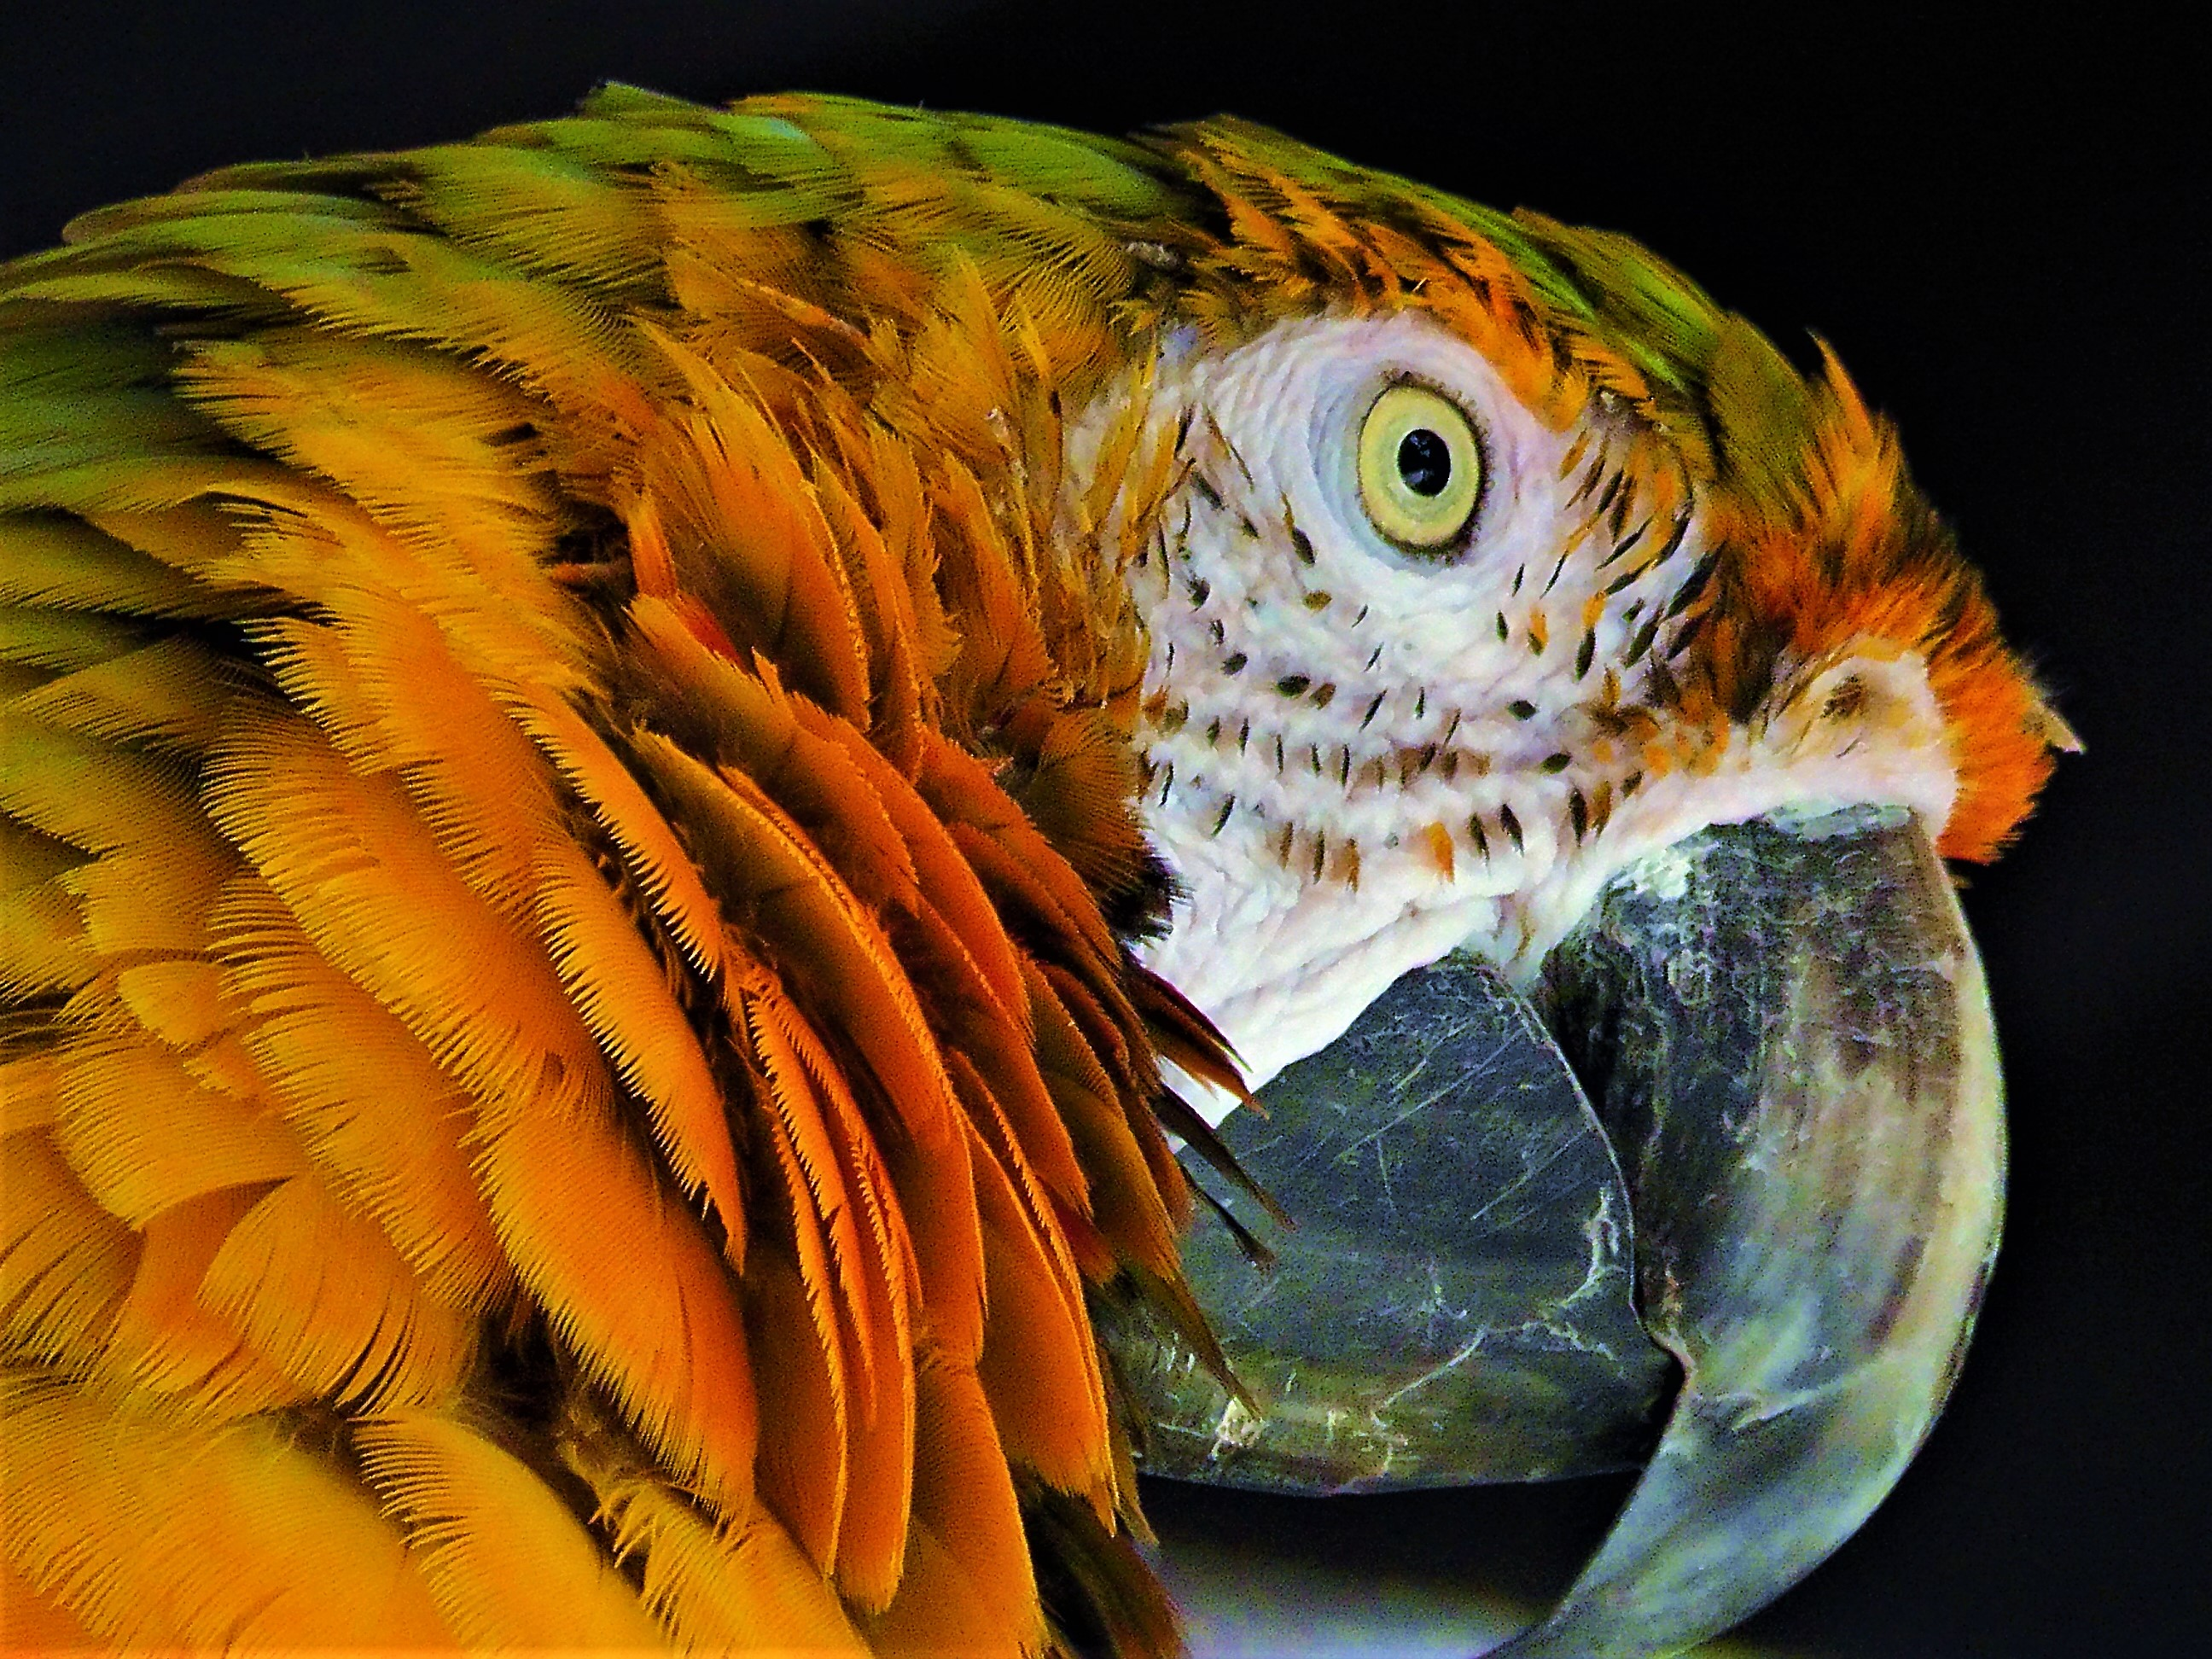 Green and Orange Parrot Face 01